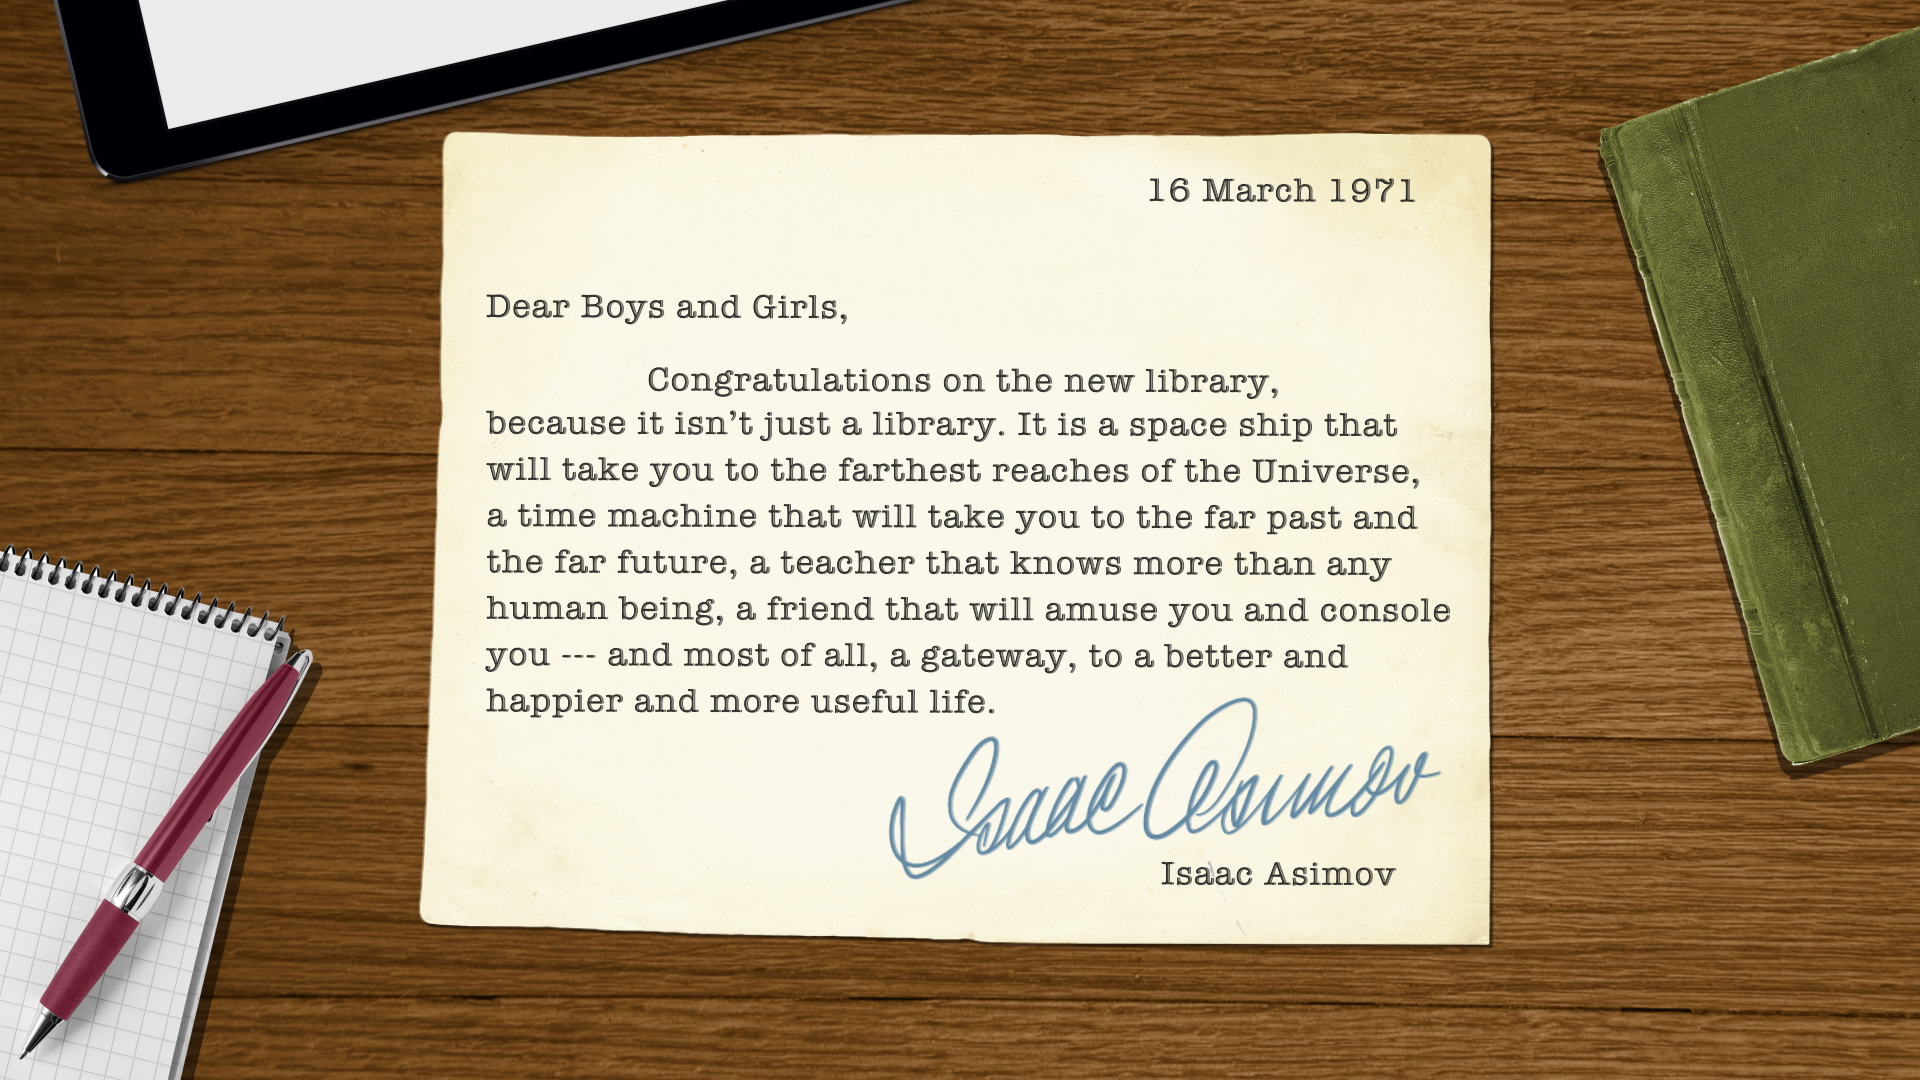 A letter from Isaac Asimov.